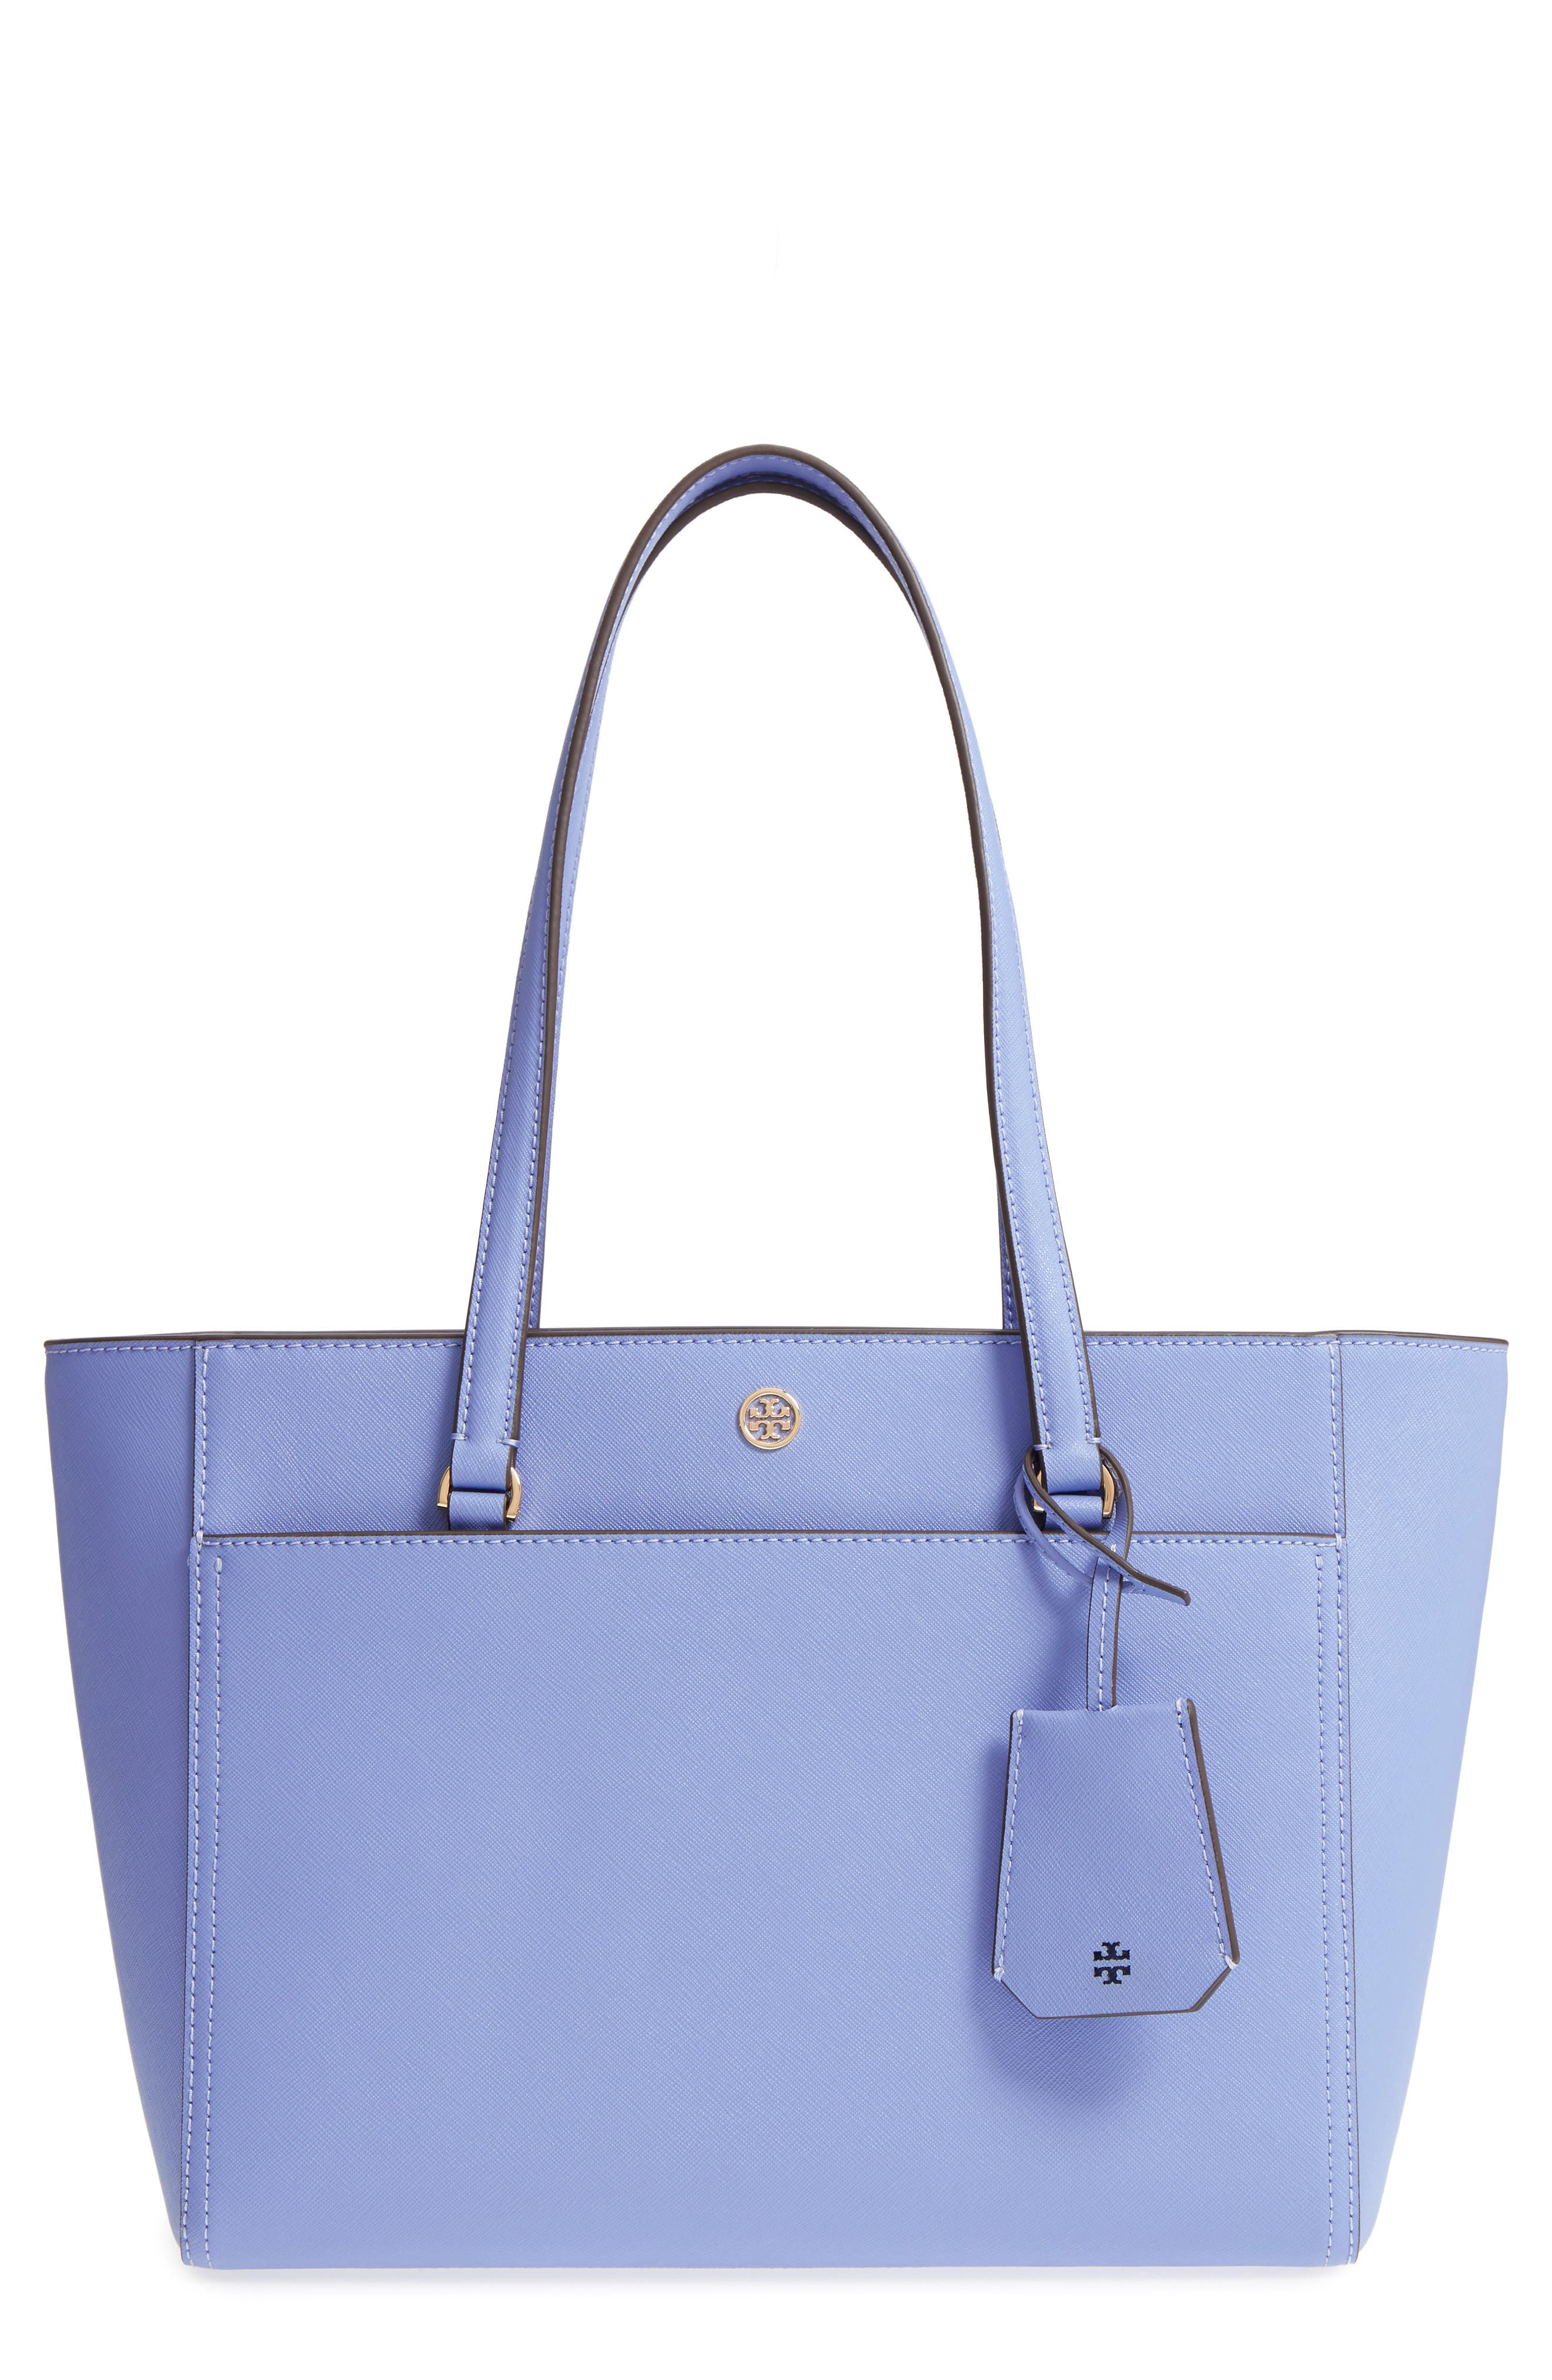 Main Image - Tory Burch Small Robinson Leather Tote